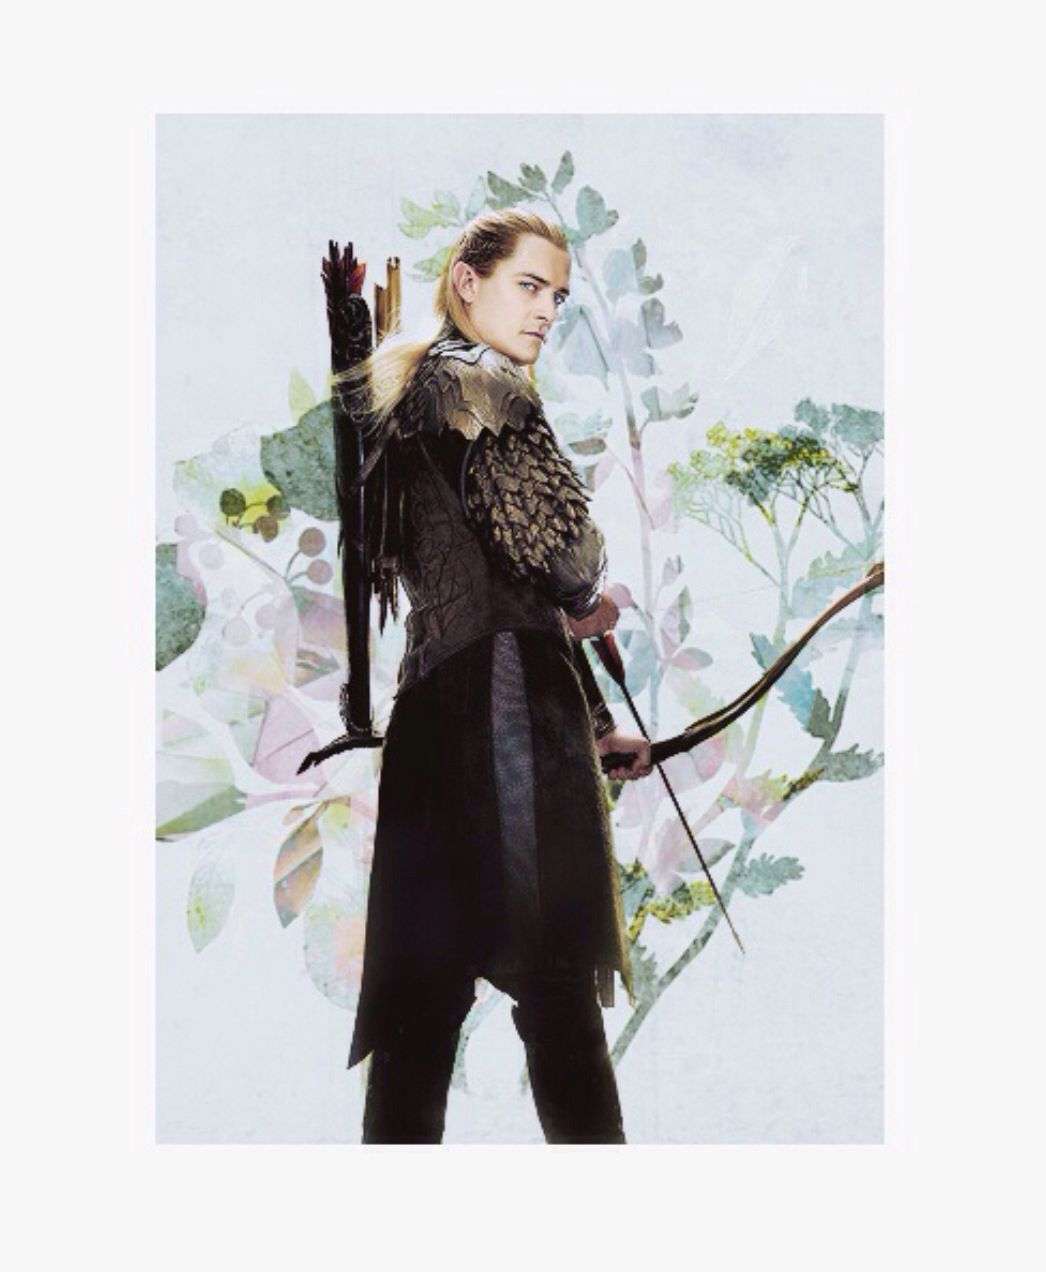 Pin by Heather Sondreal on Legolas Greenleaf: Prince of ...